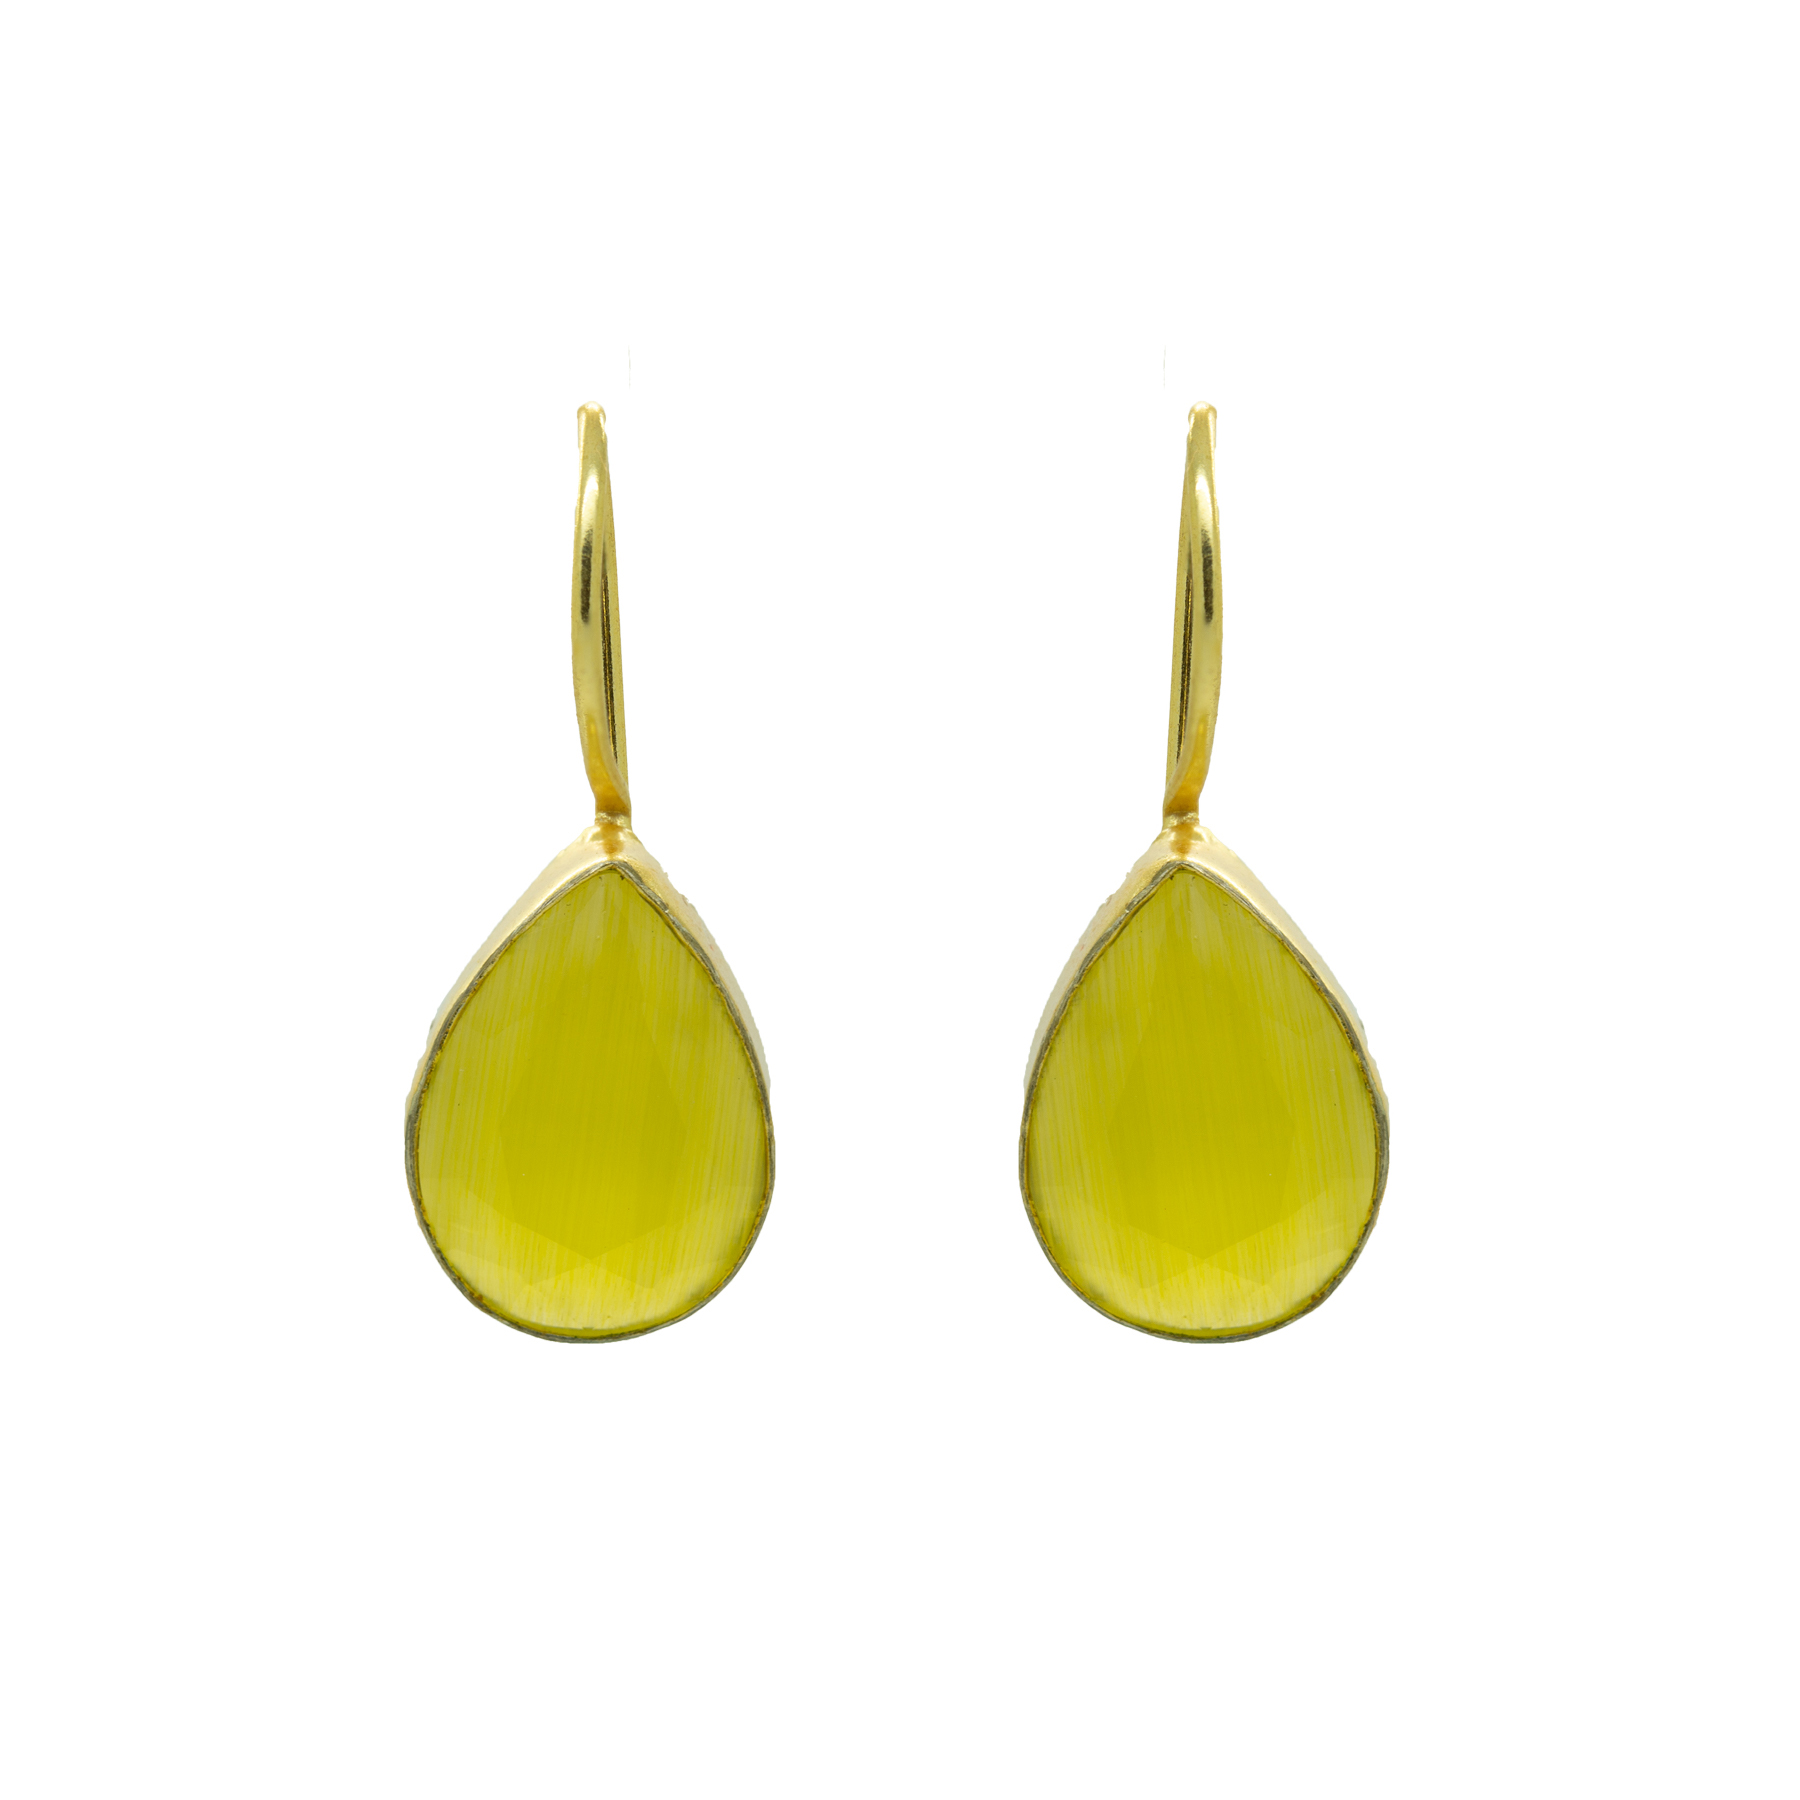 Light Weighted Hook Yellow Earring 2